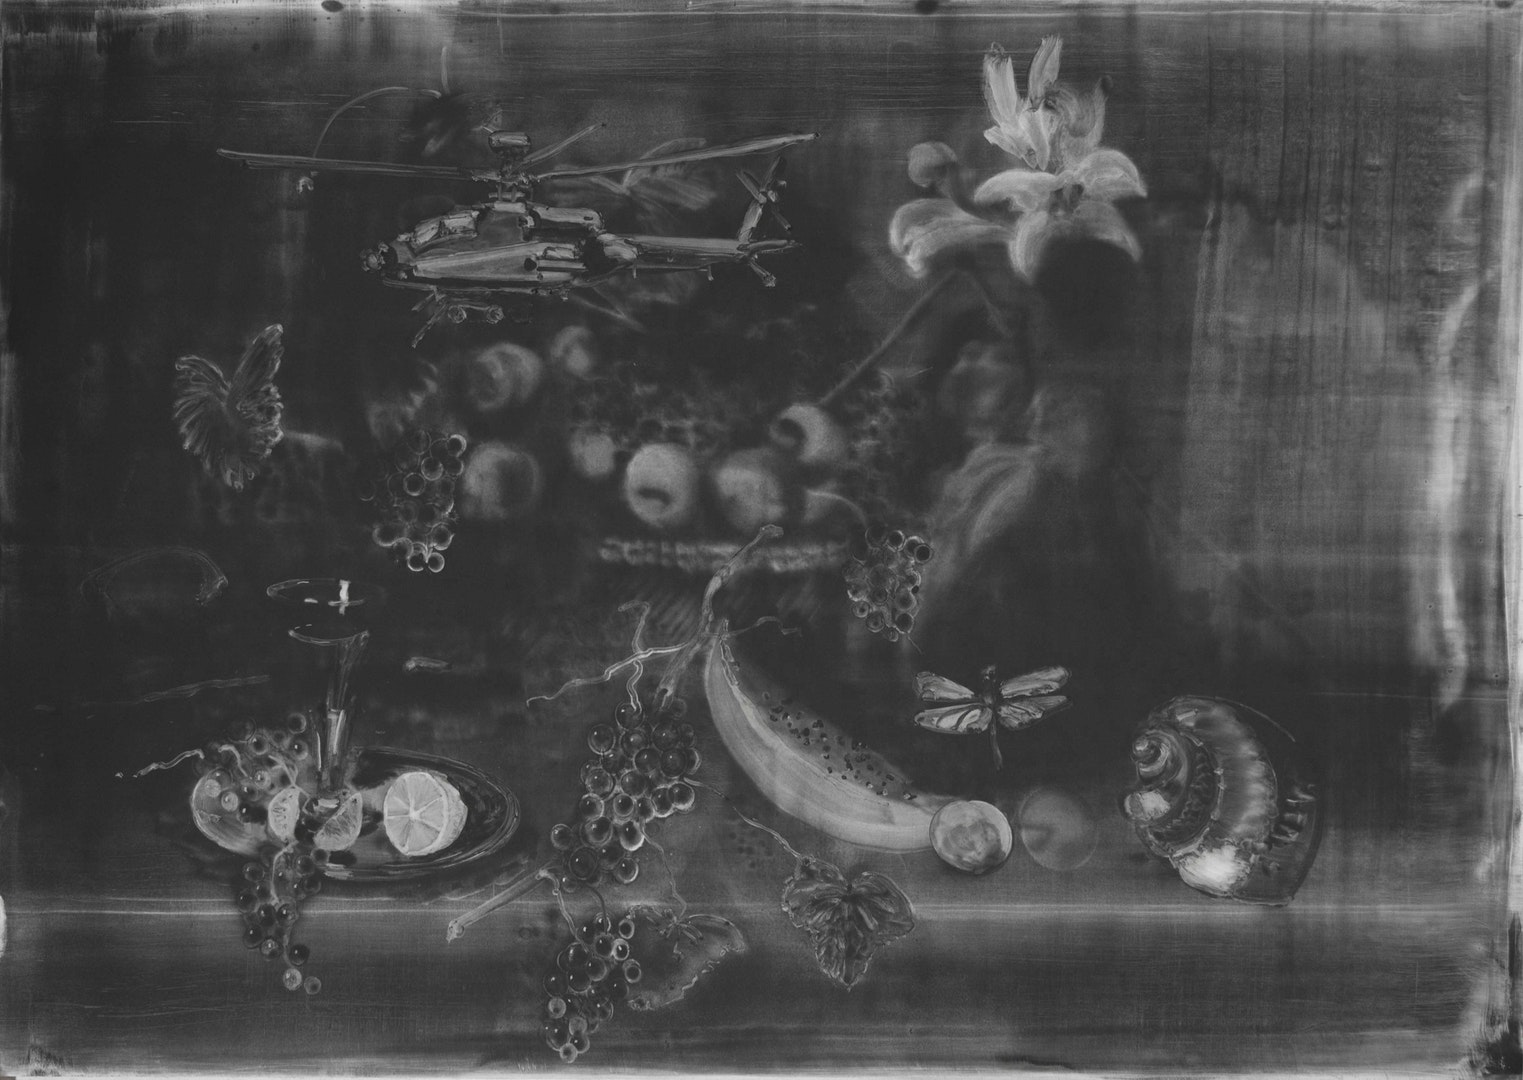 'Still Life with Dragonfly', Christopher Cook, graphite and resin on paper, 72 x 102 cm